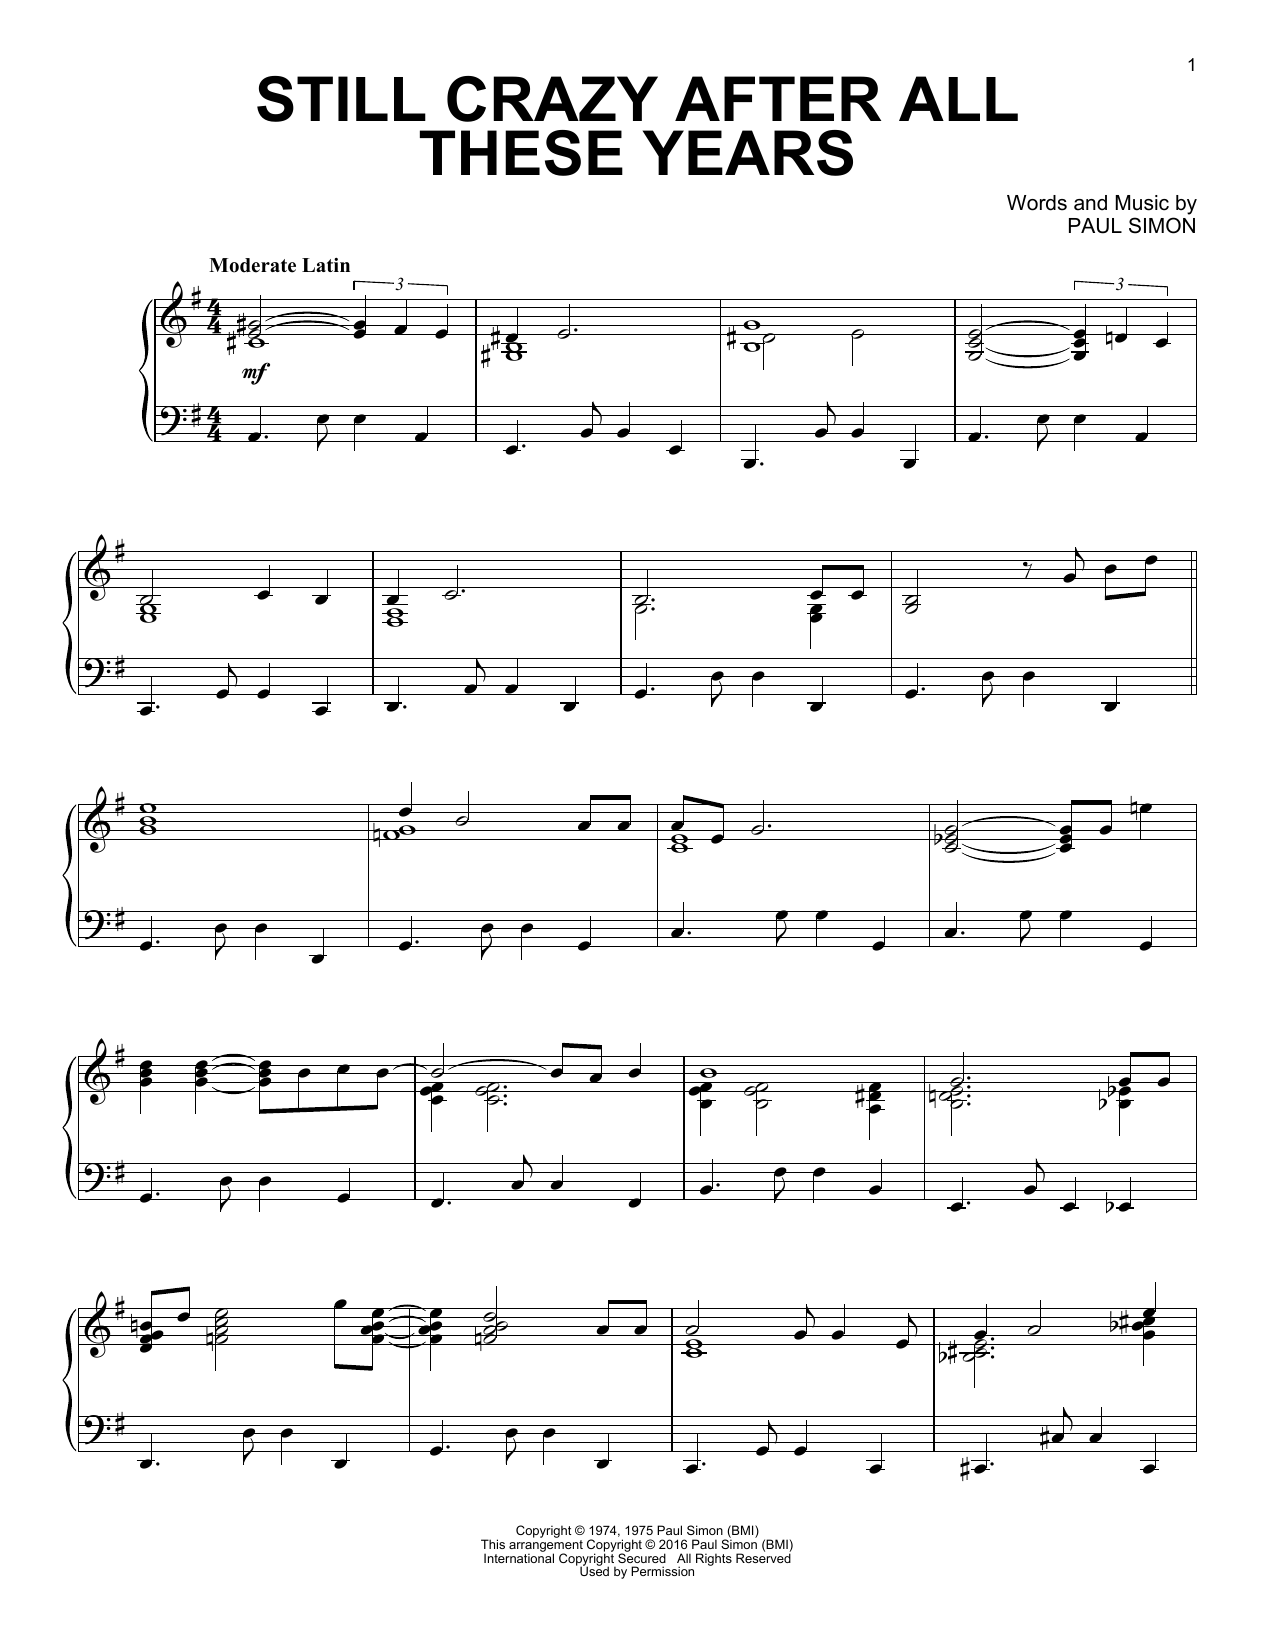 Simon & Garfunkel Still Crazy After All These Years sheet music notes and chords. Download Printable PDF.